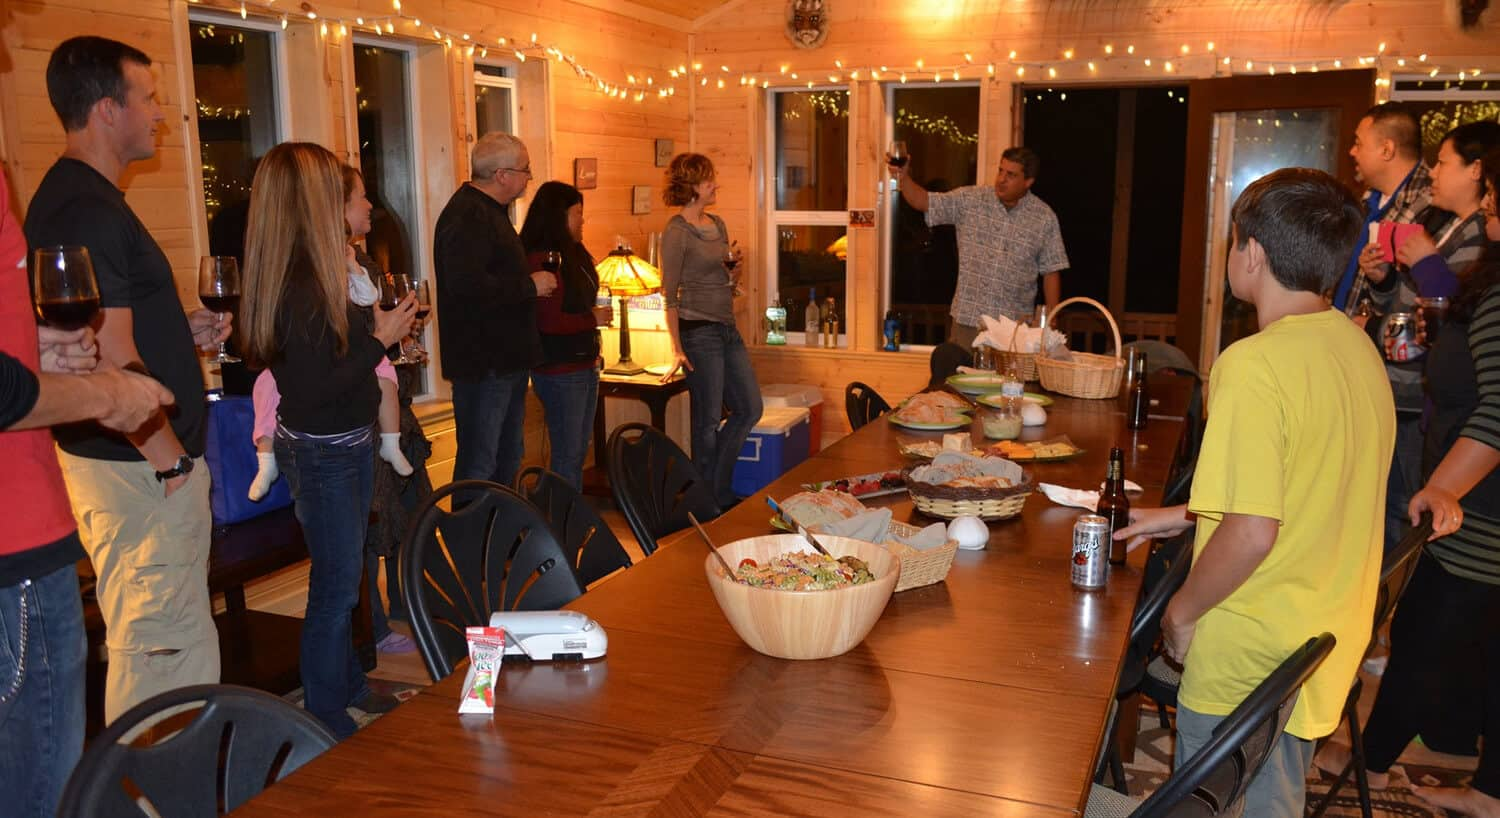 guests holding beverages for toast wearing casual clothing in room with long table with food for celebration